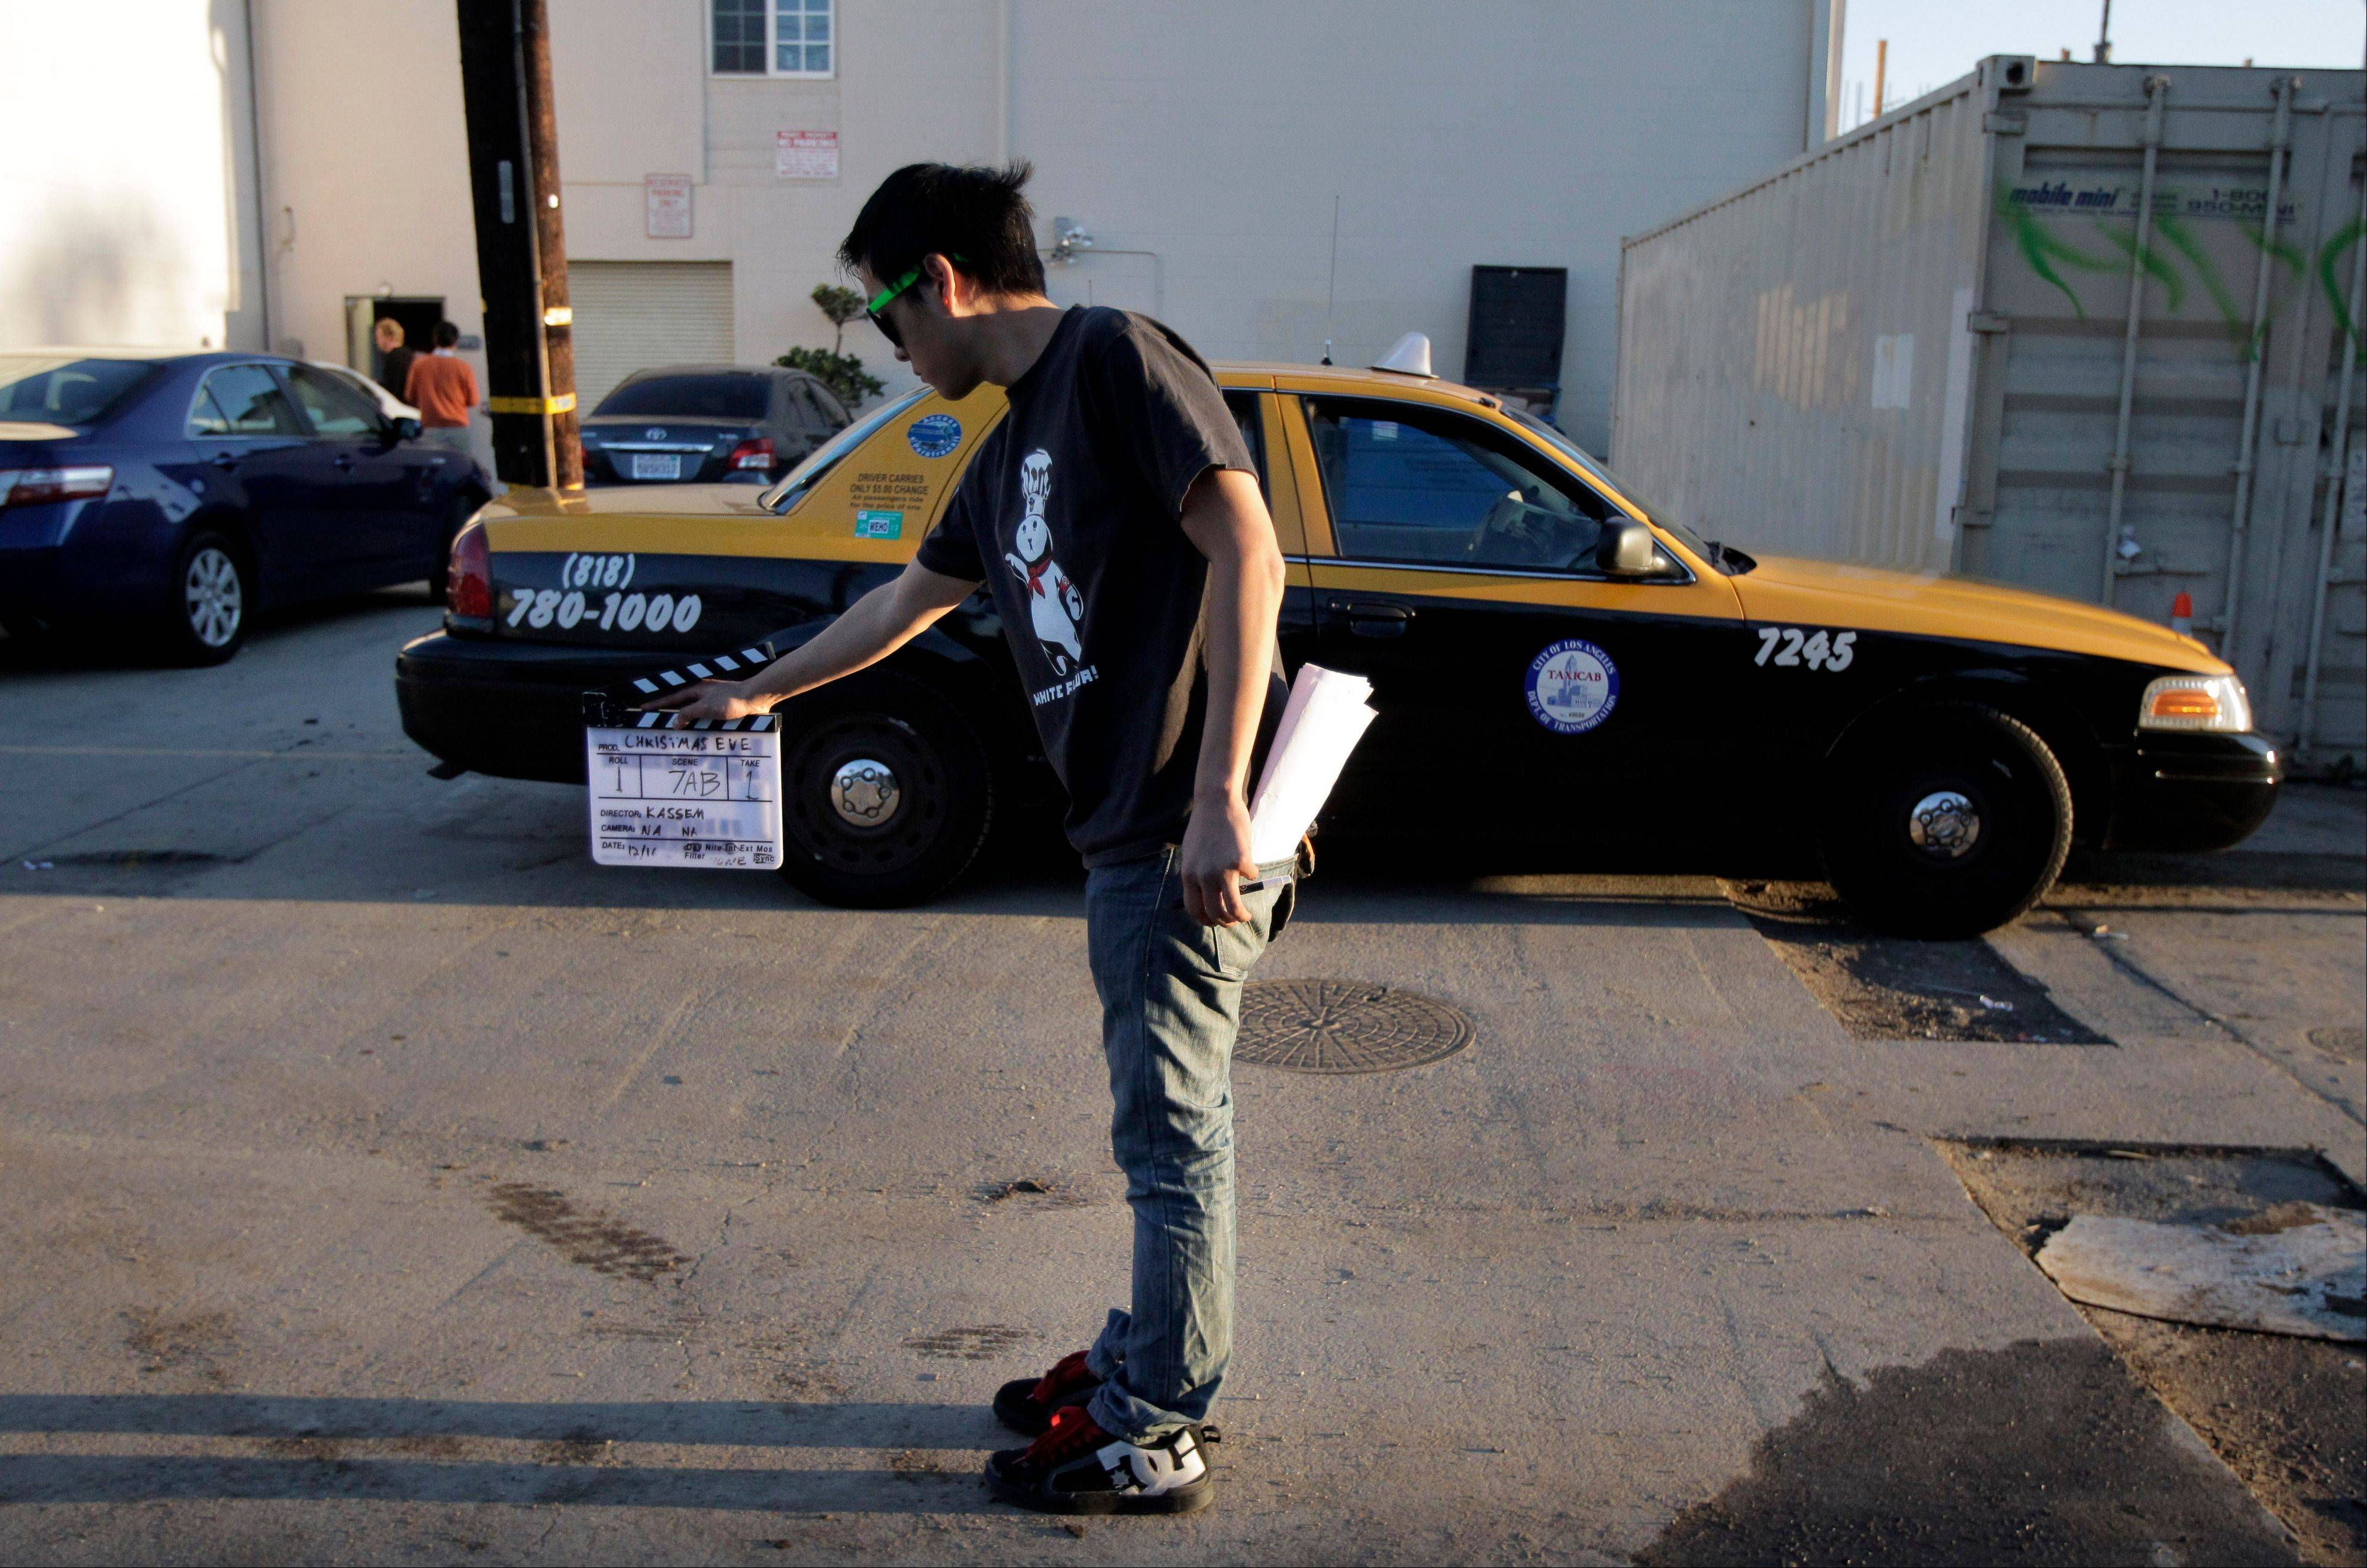 Crew member Arthur Hong holds a clapboard while filming holiday movie trailers at the Maker Studios in Culver City, Calif. The $100 million investment by YouTube in 96 new channels starting in October has sparked a flurry of activity in Hollywood's independent producer community.